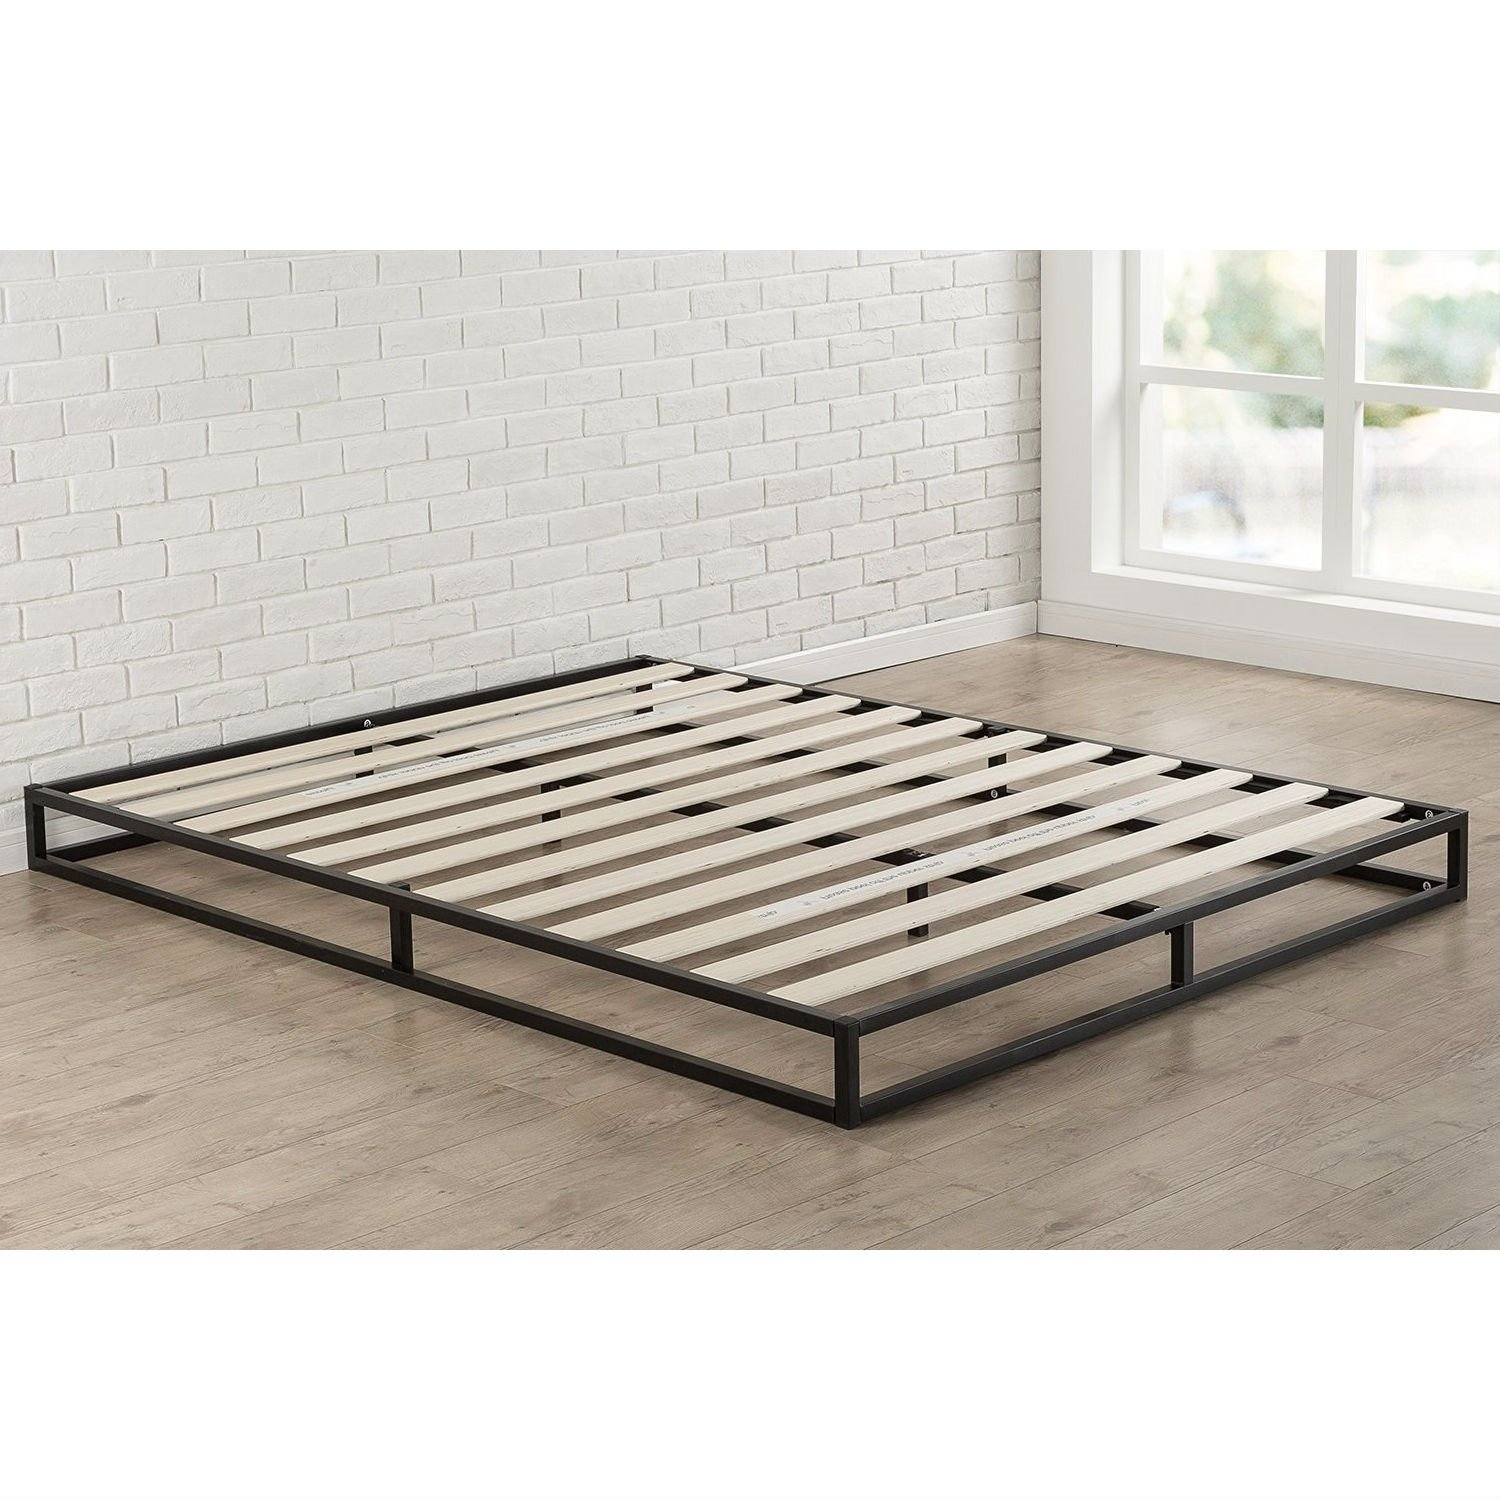 King Size 6 Inch Low Profile Metal Platform Bed Frame With Wood Slat Mattress Foundation In 2020 Metal Platform Bed Low Profile Bed Frame Low Platform Bed Frame